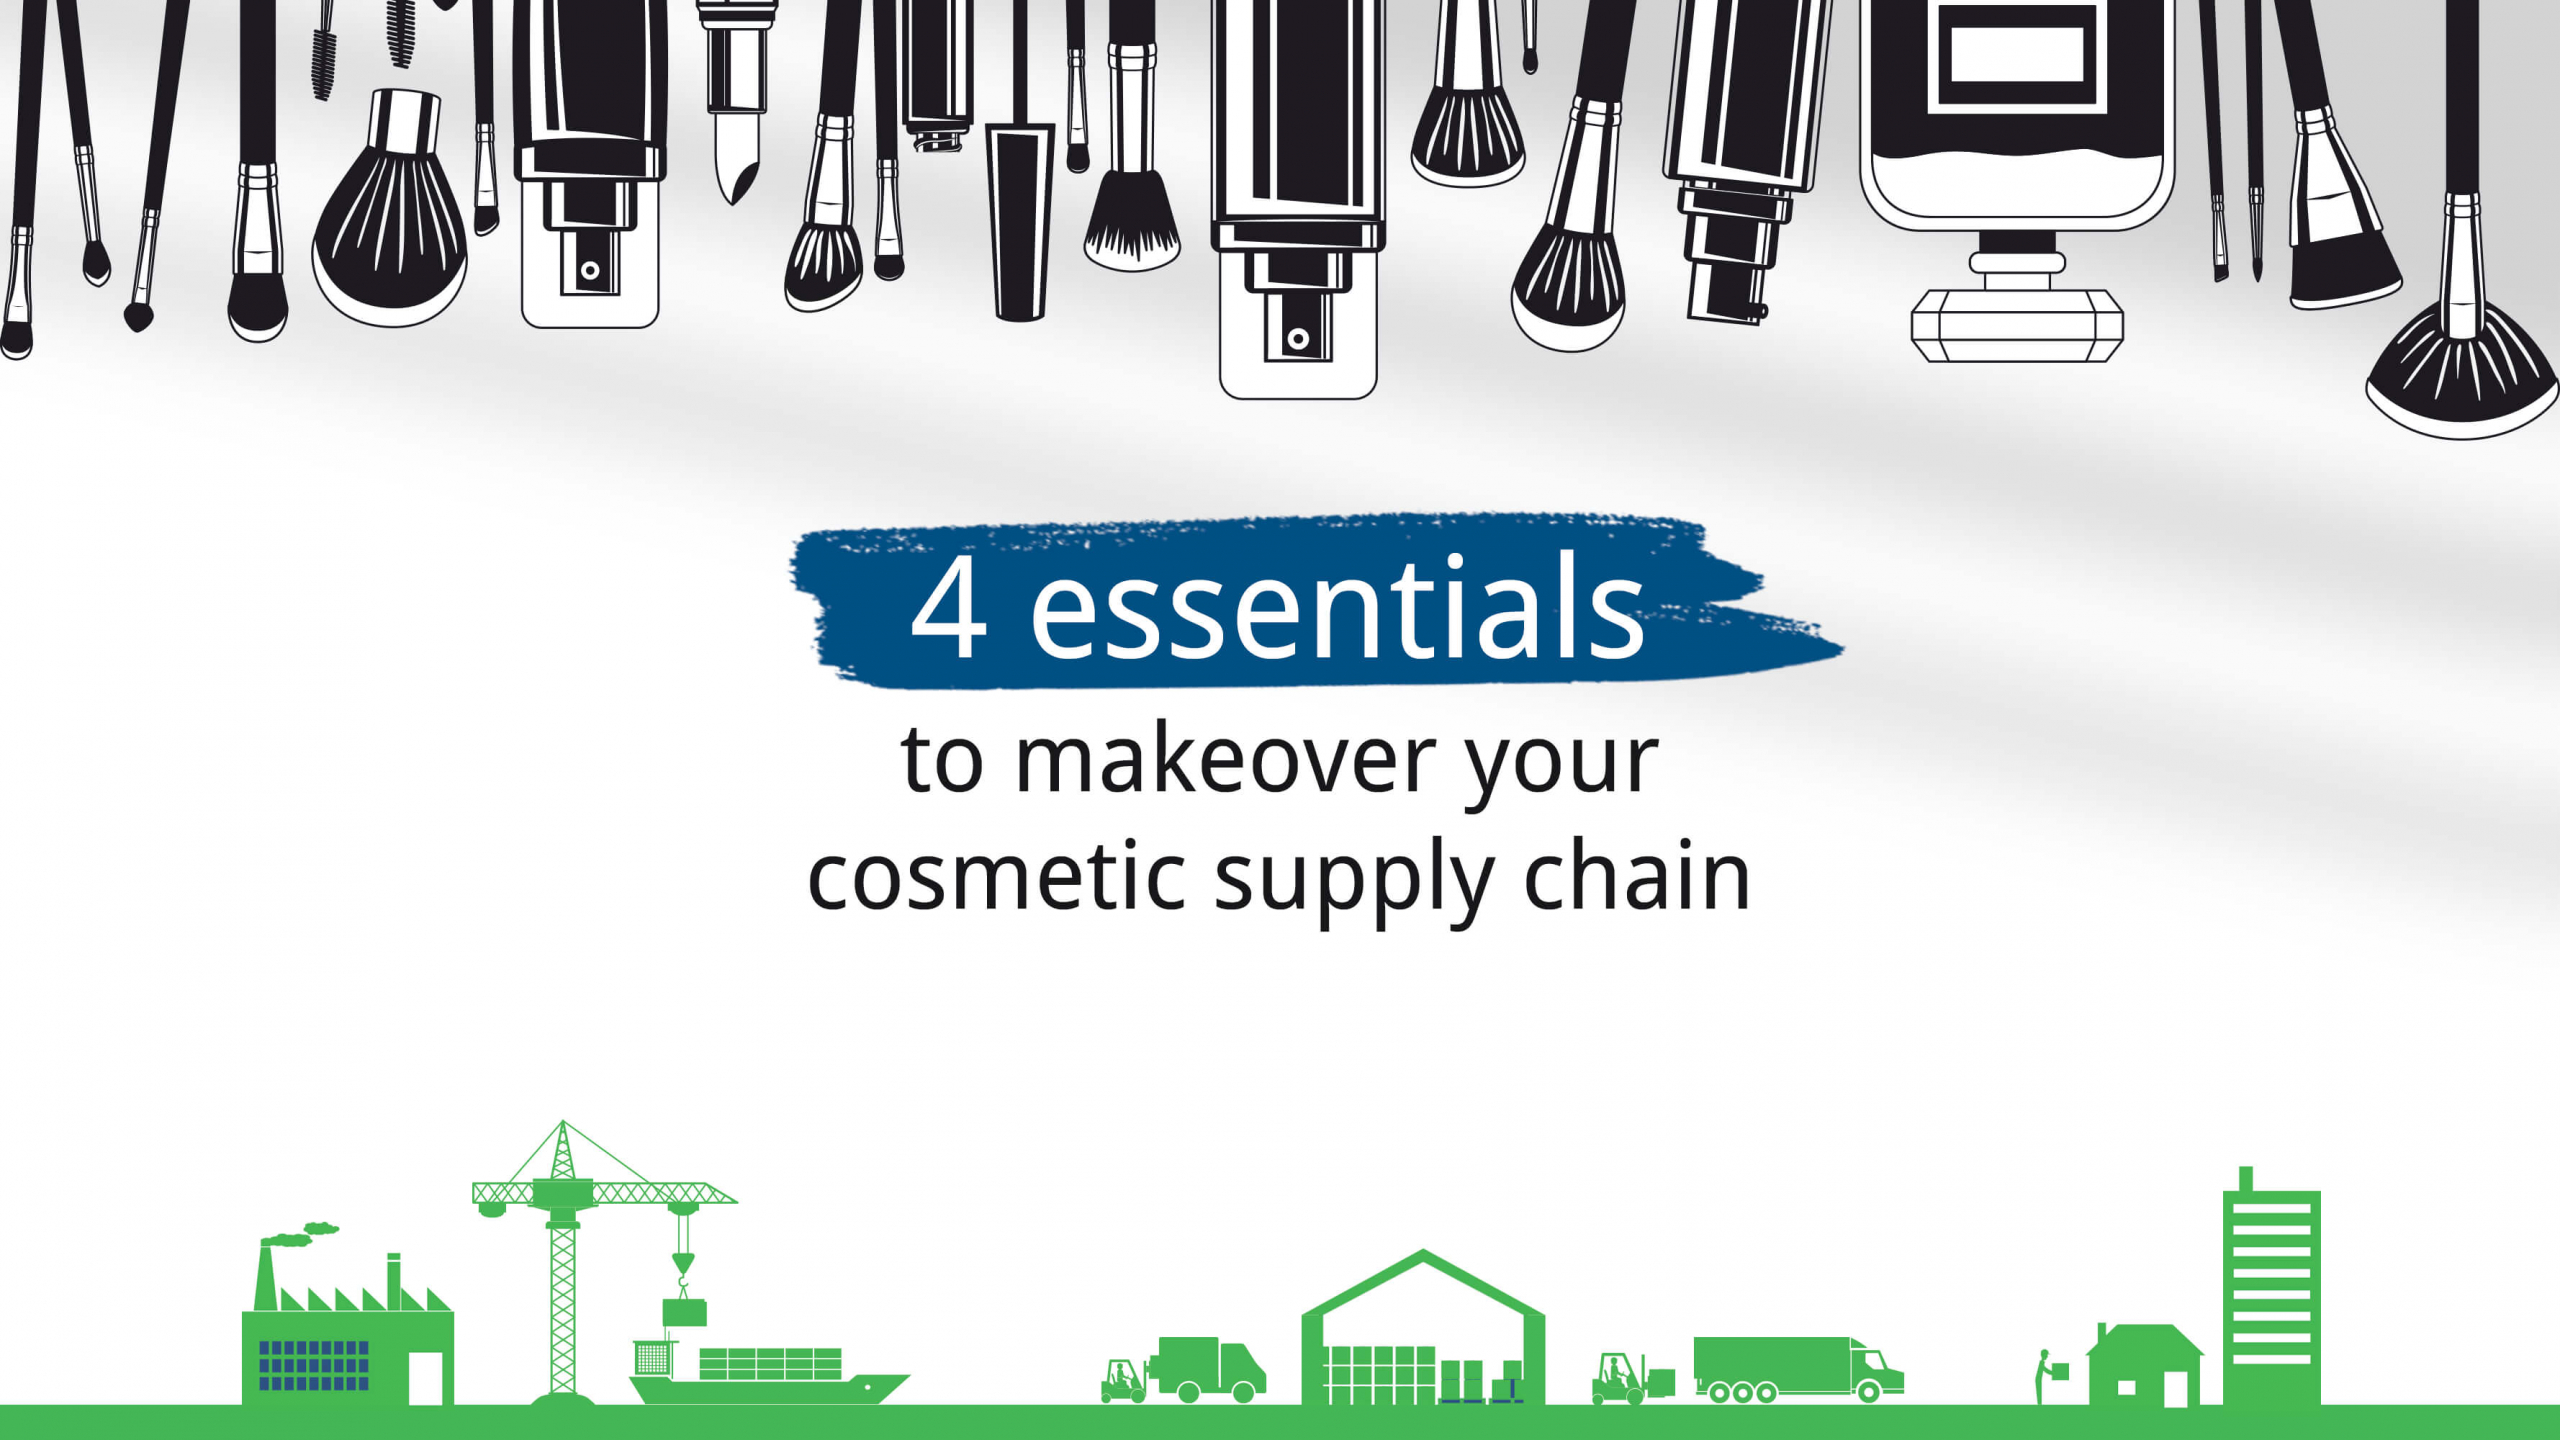 Four essentials for your cosmetic supply chain